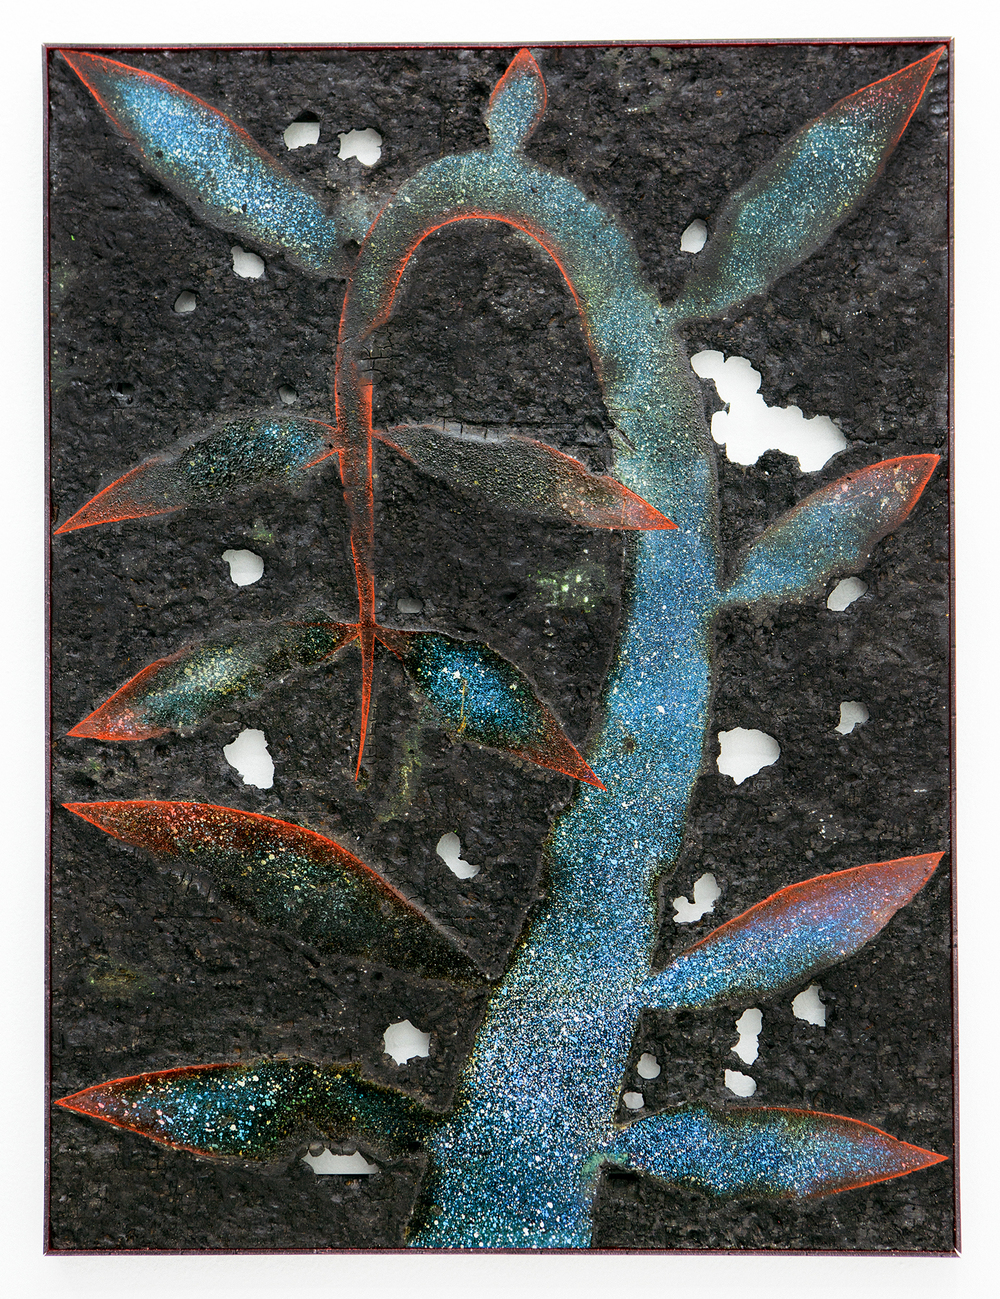 TBT, 2015, spray paint, pigment, burns, varnish, oil paint, on wood, plexiglass, 24x18 inches